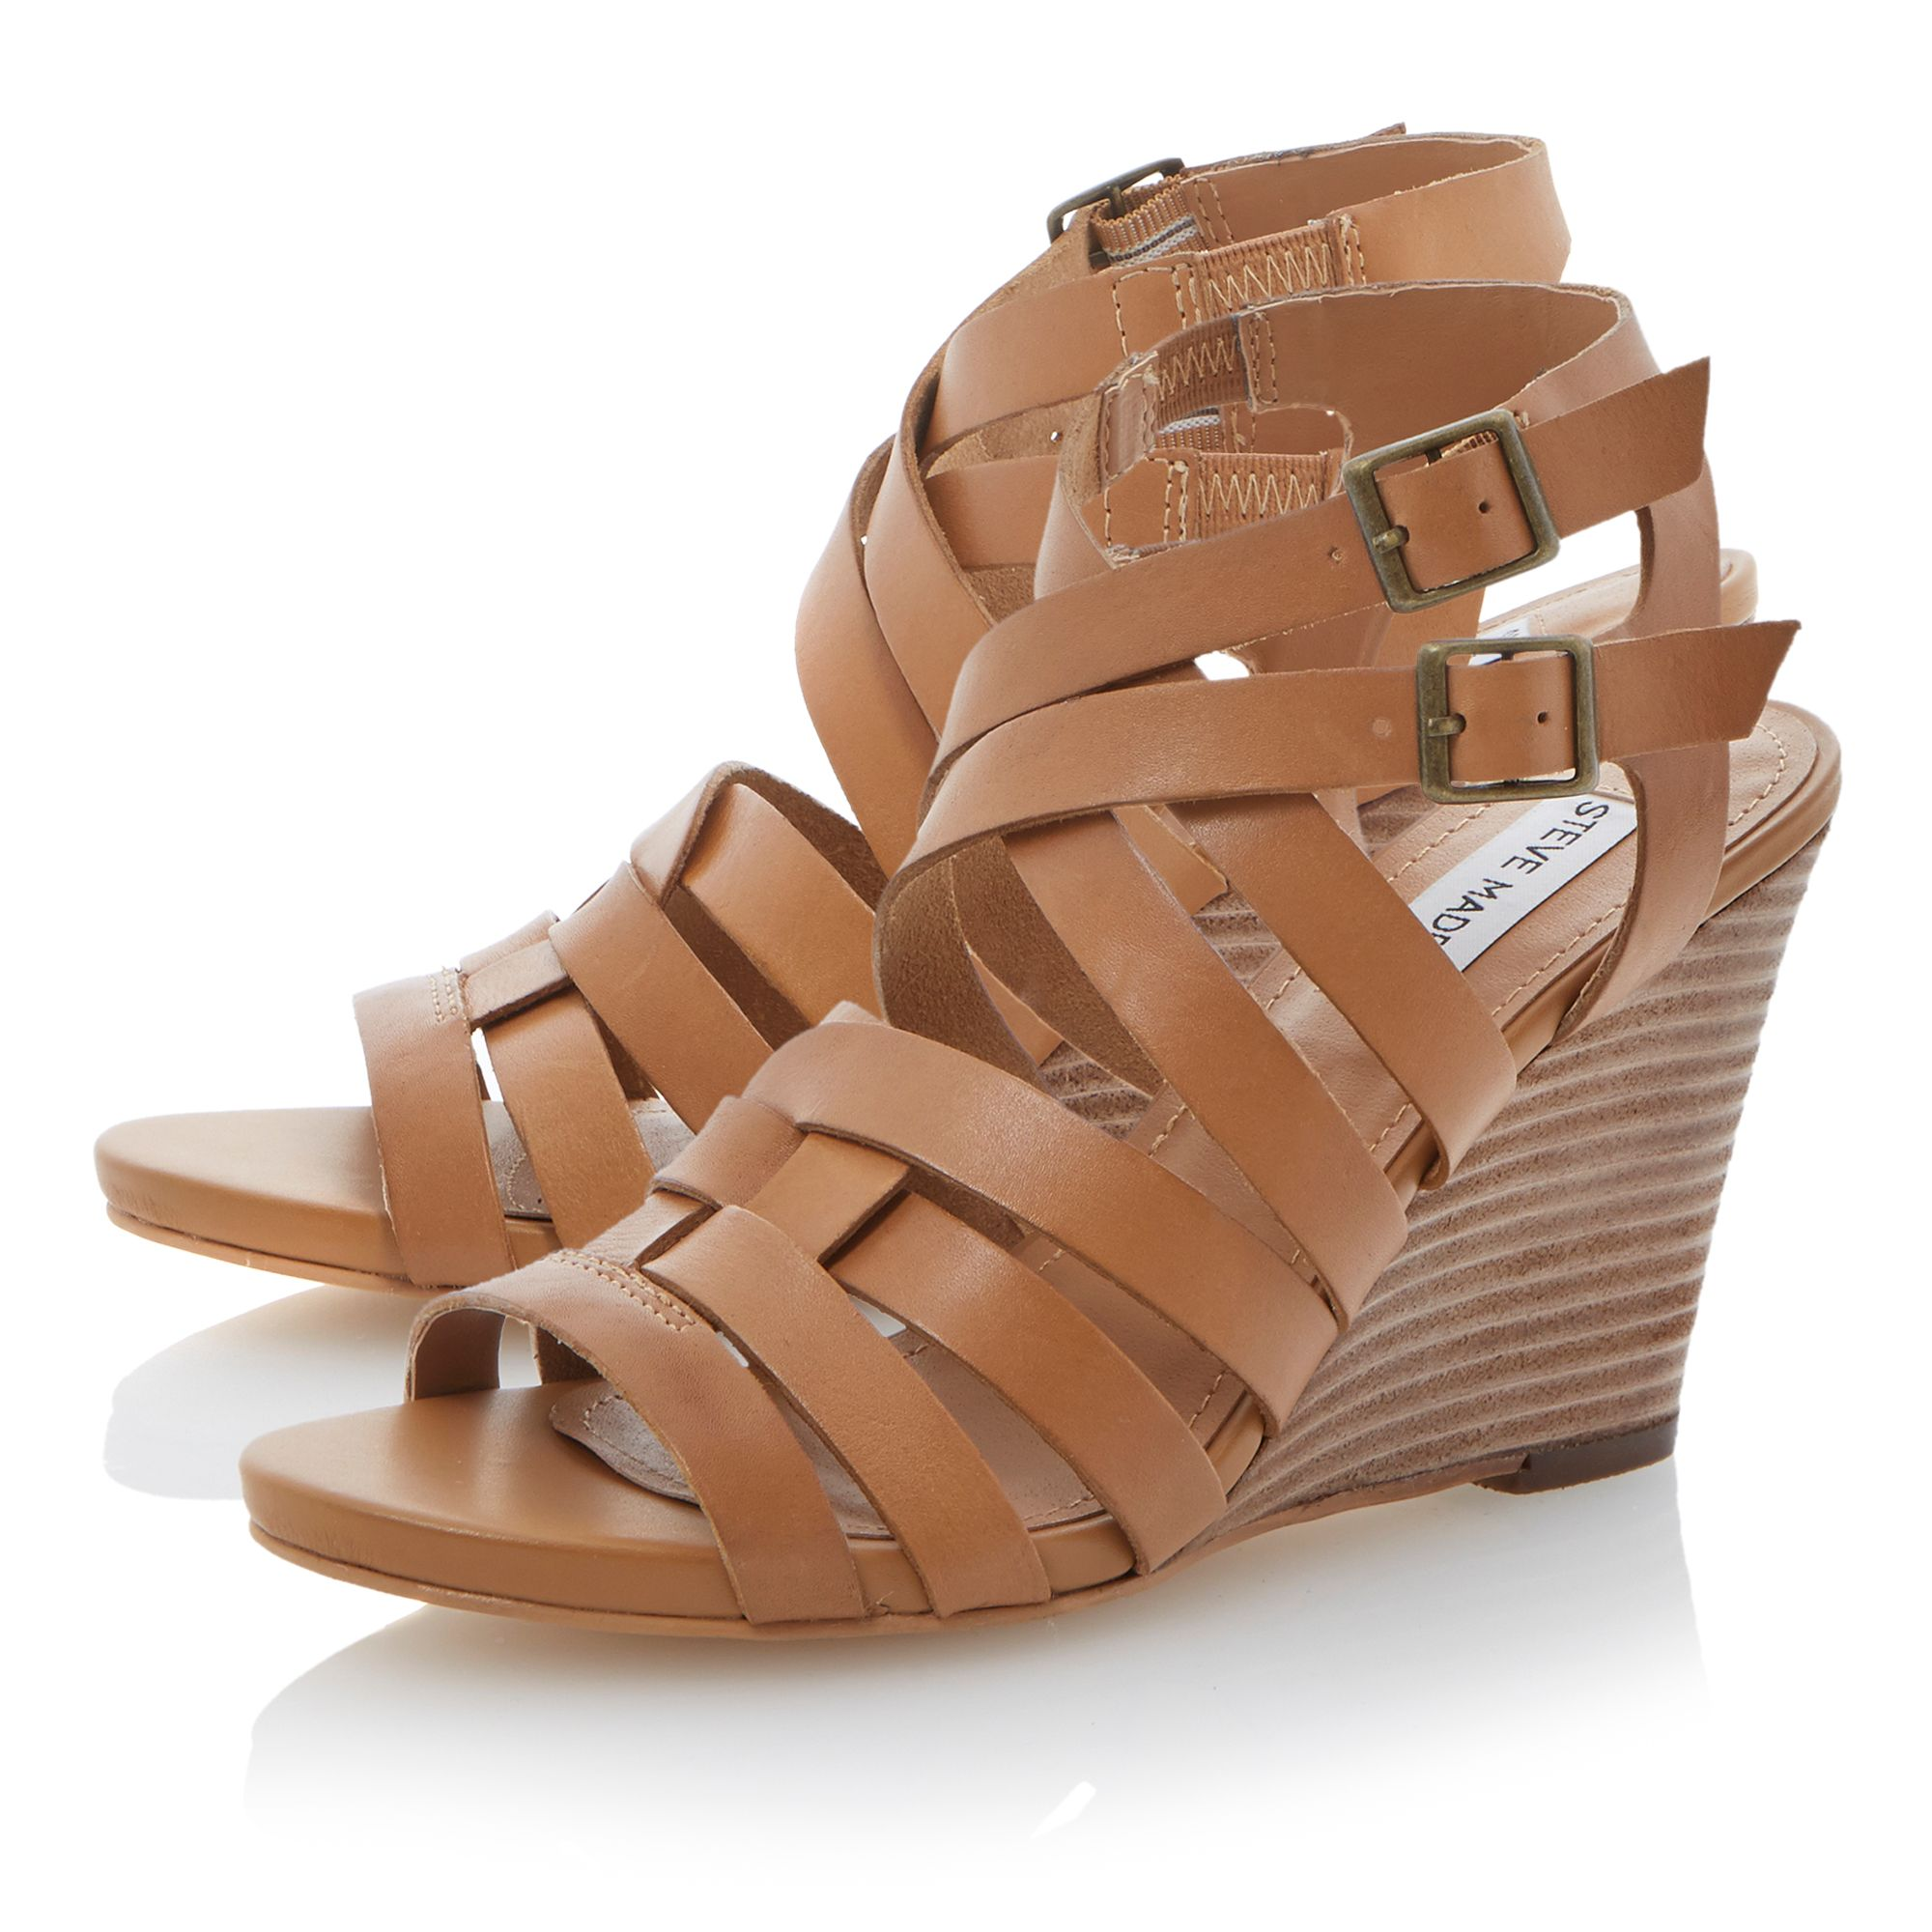 Venis strappy double buckle sandals